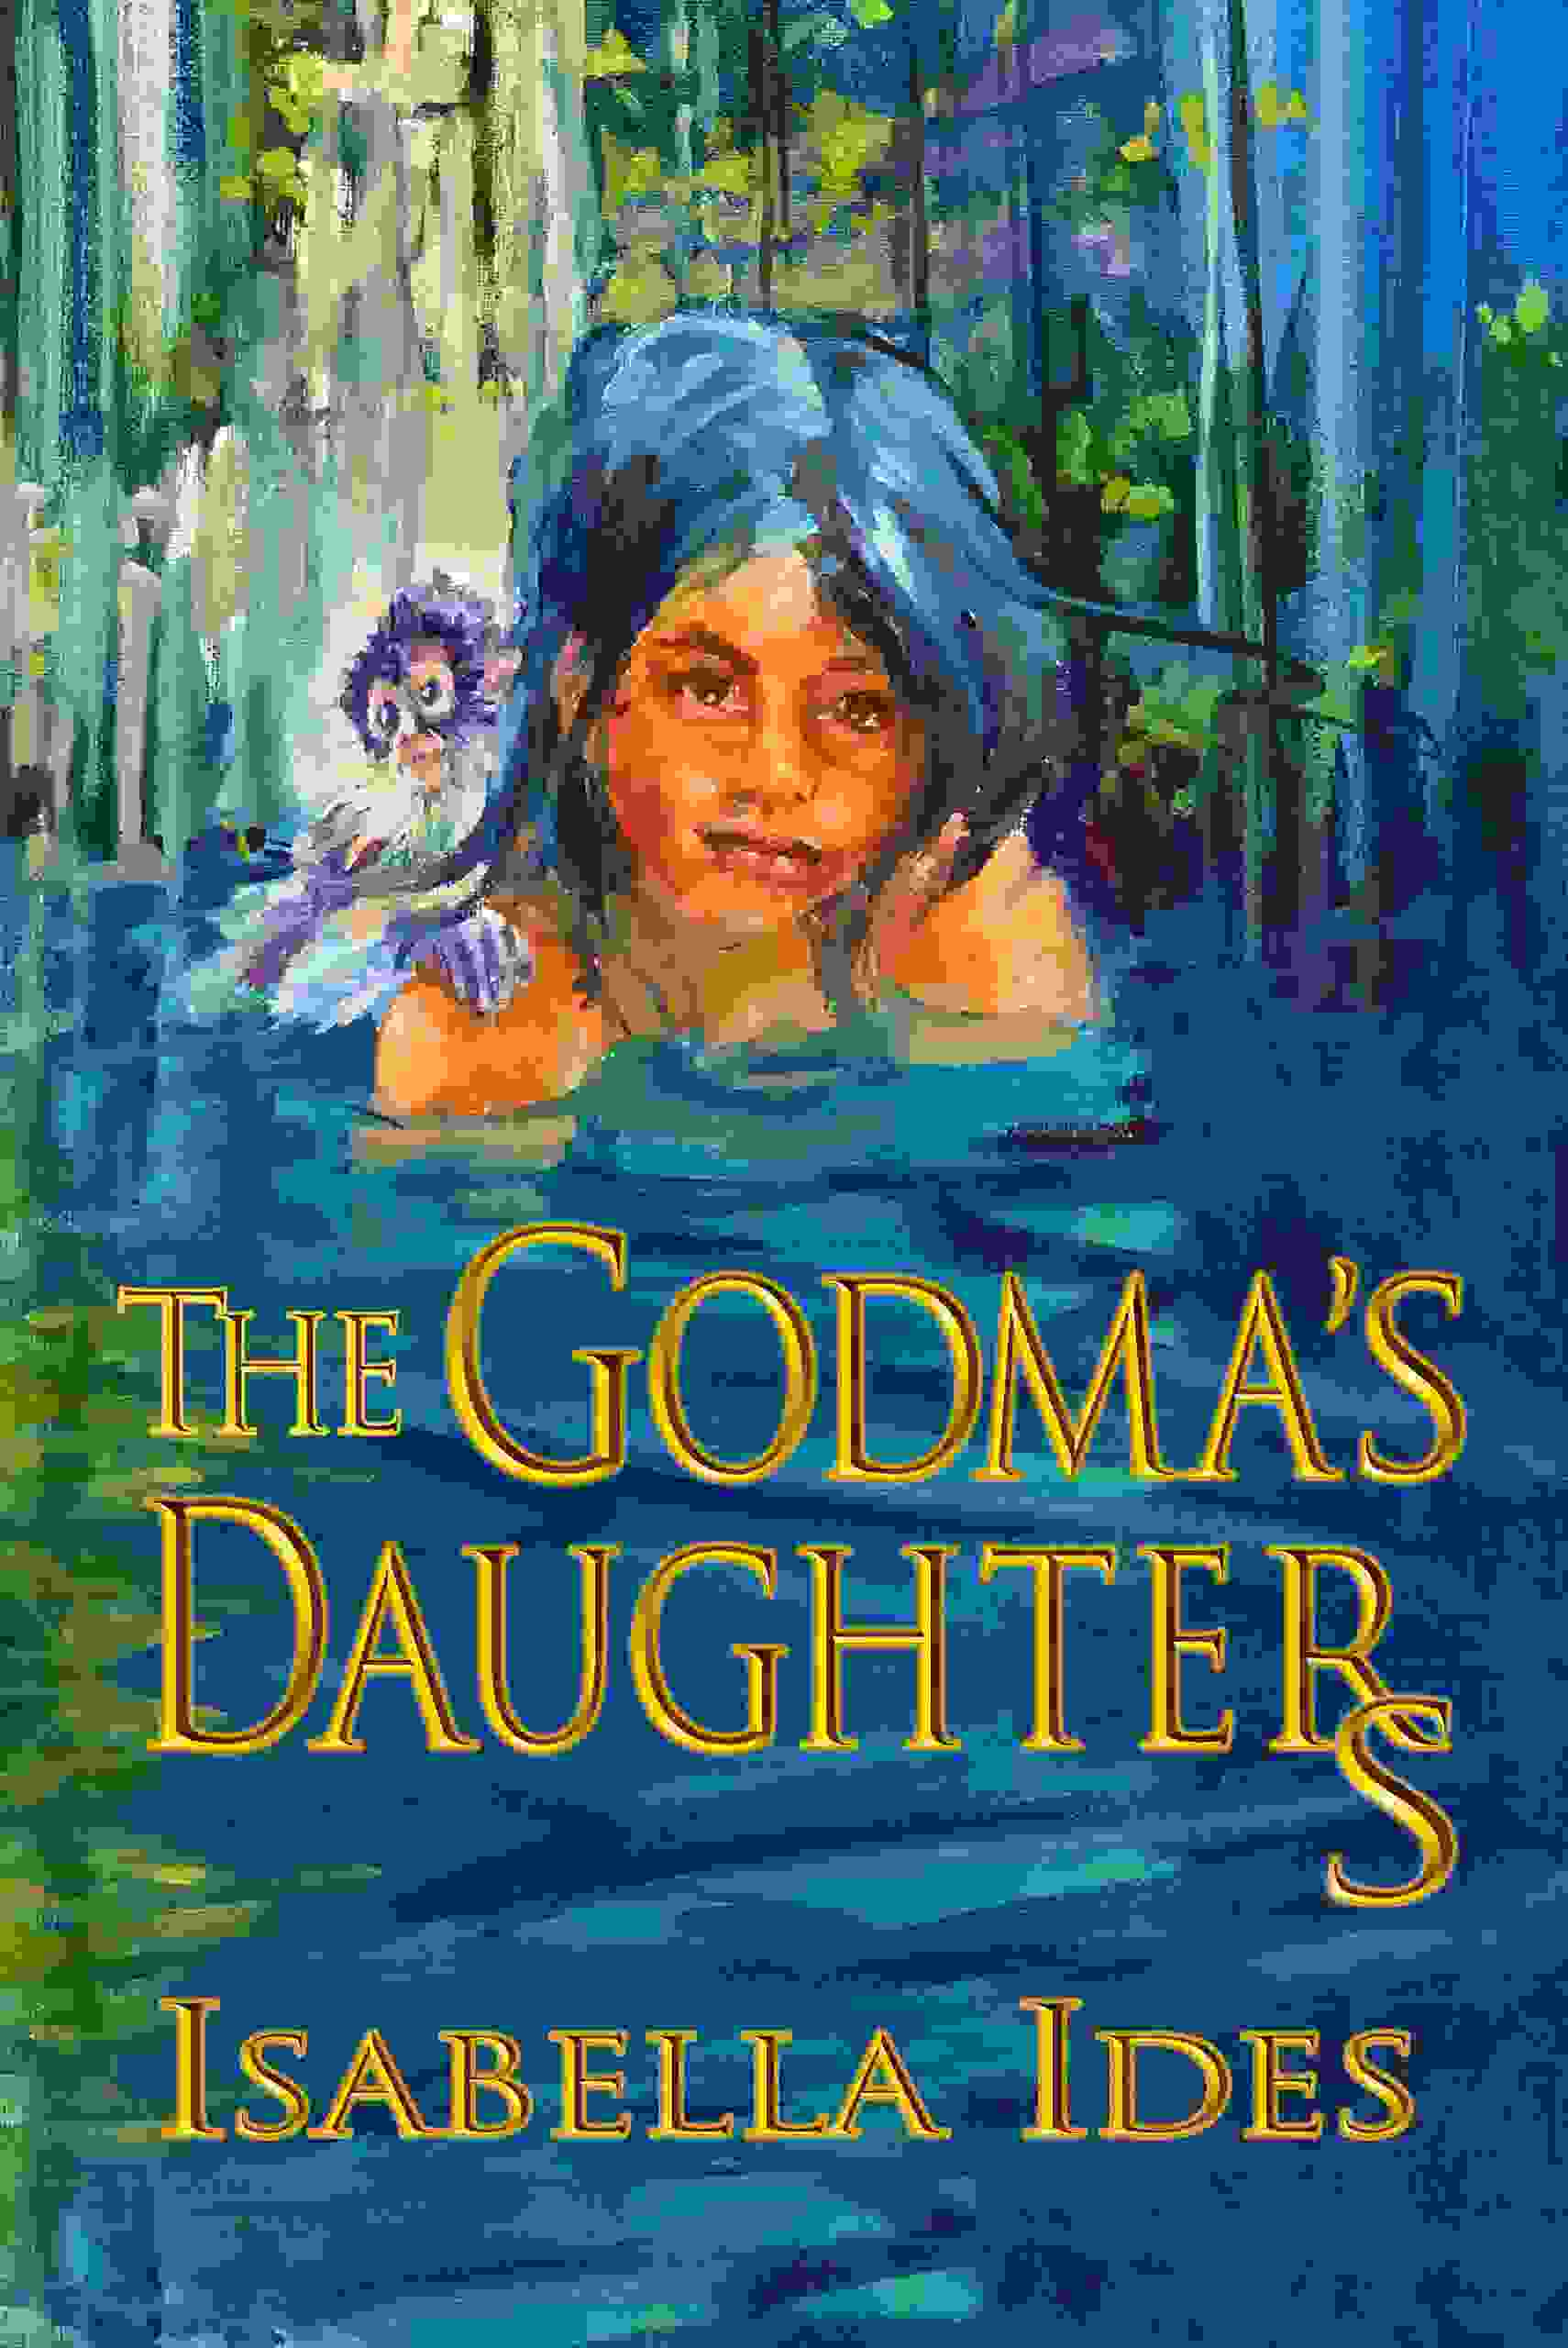 The Godma's Daughters is a love story, a time traveler's journey, a tale of border crossings.